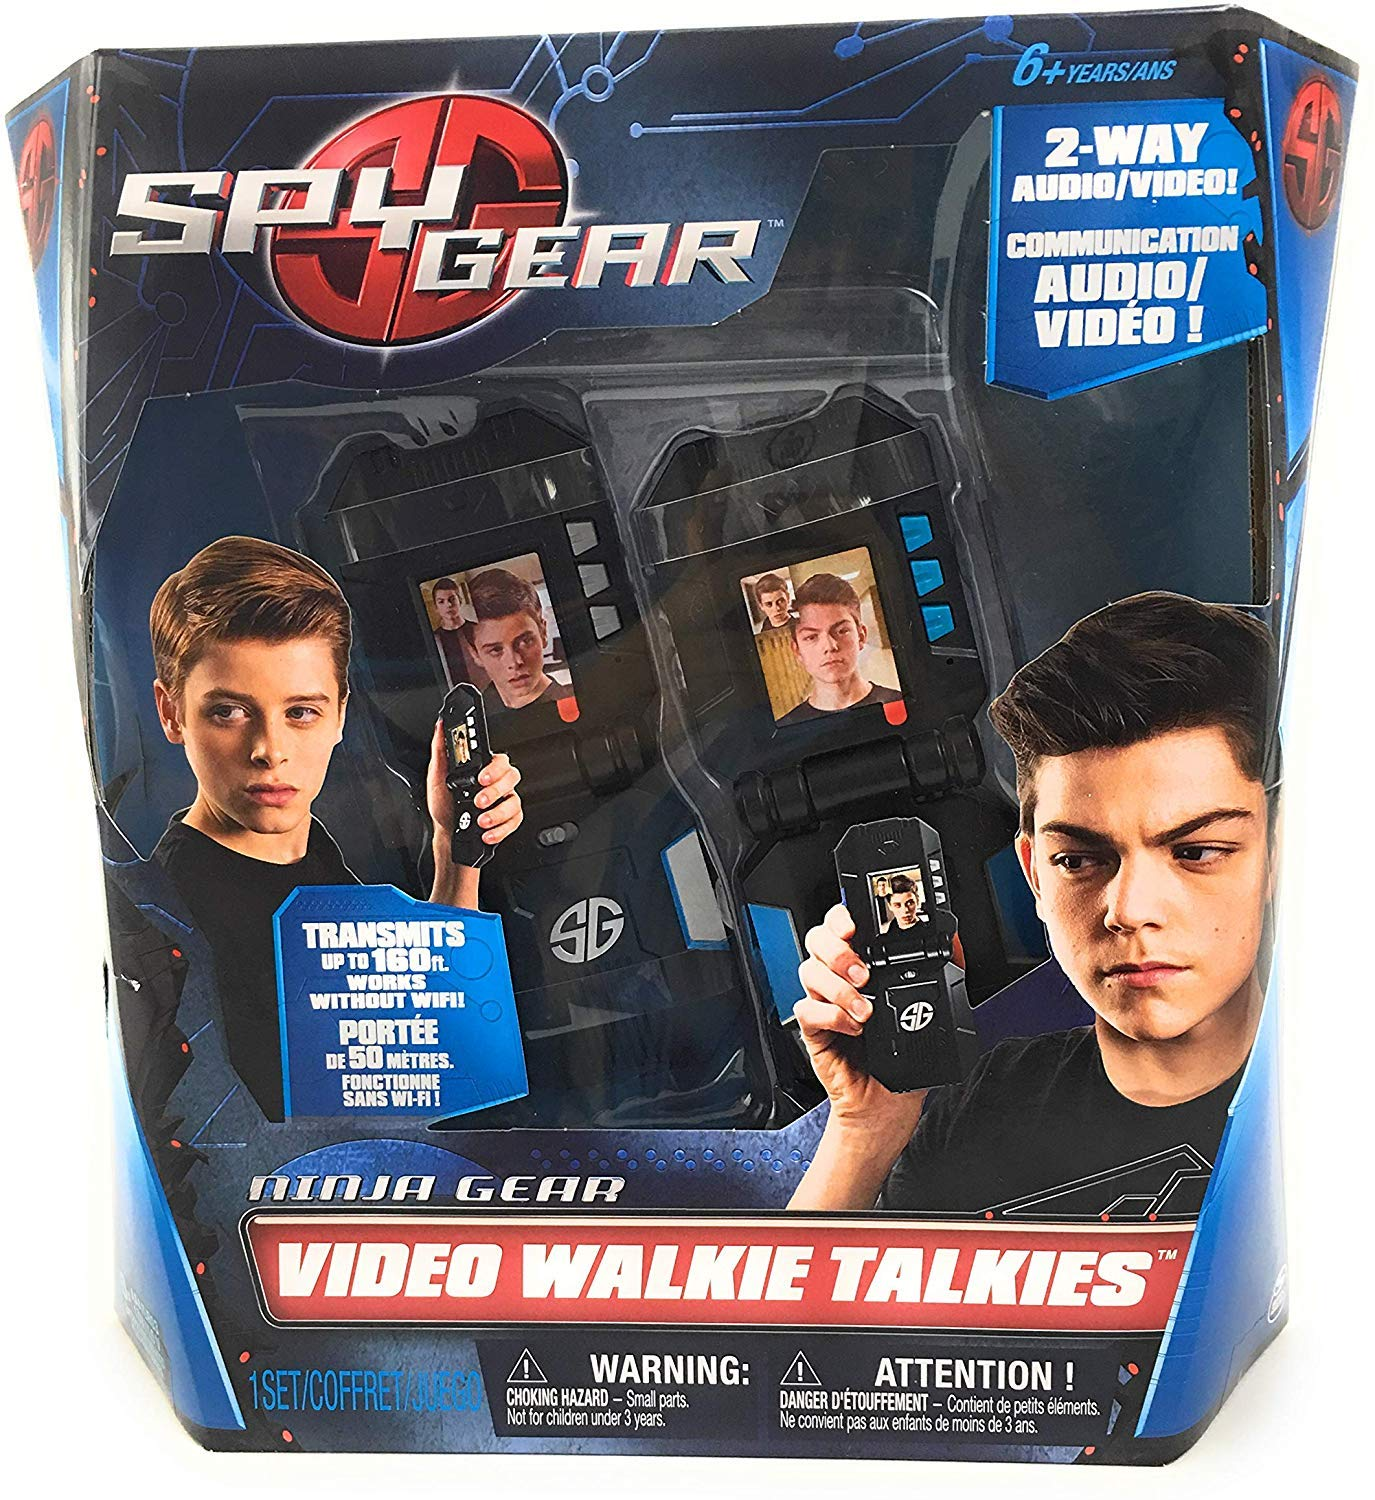 Spy Gear Ninja Video Walkie Talkies with 2-way Audio and Video